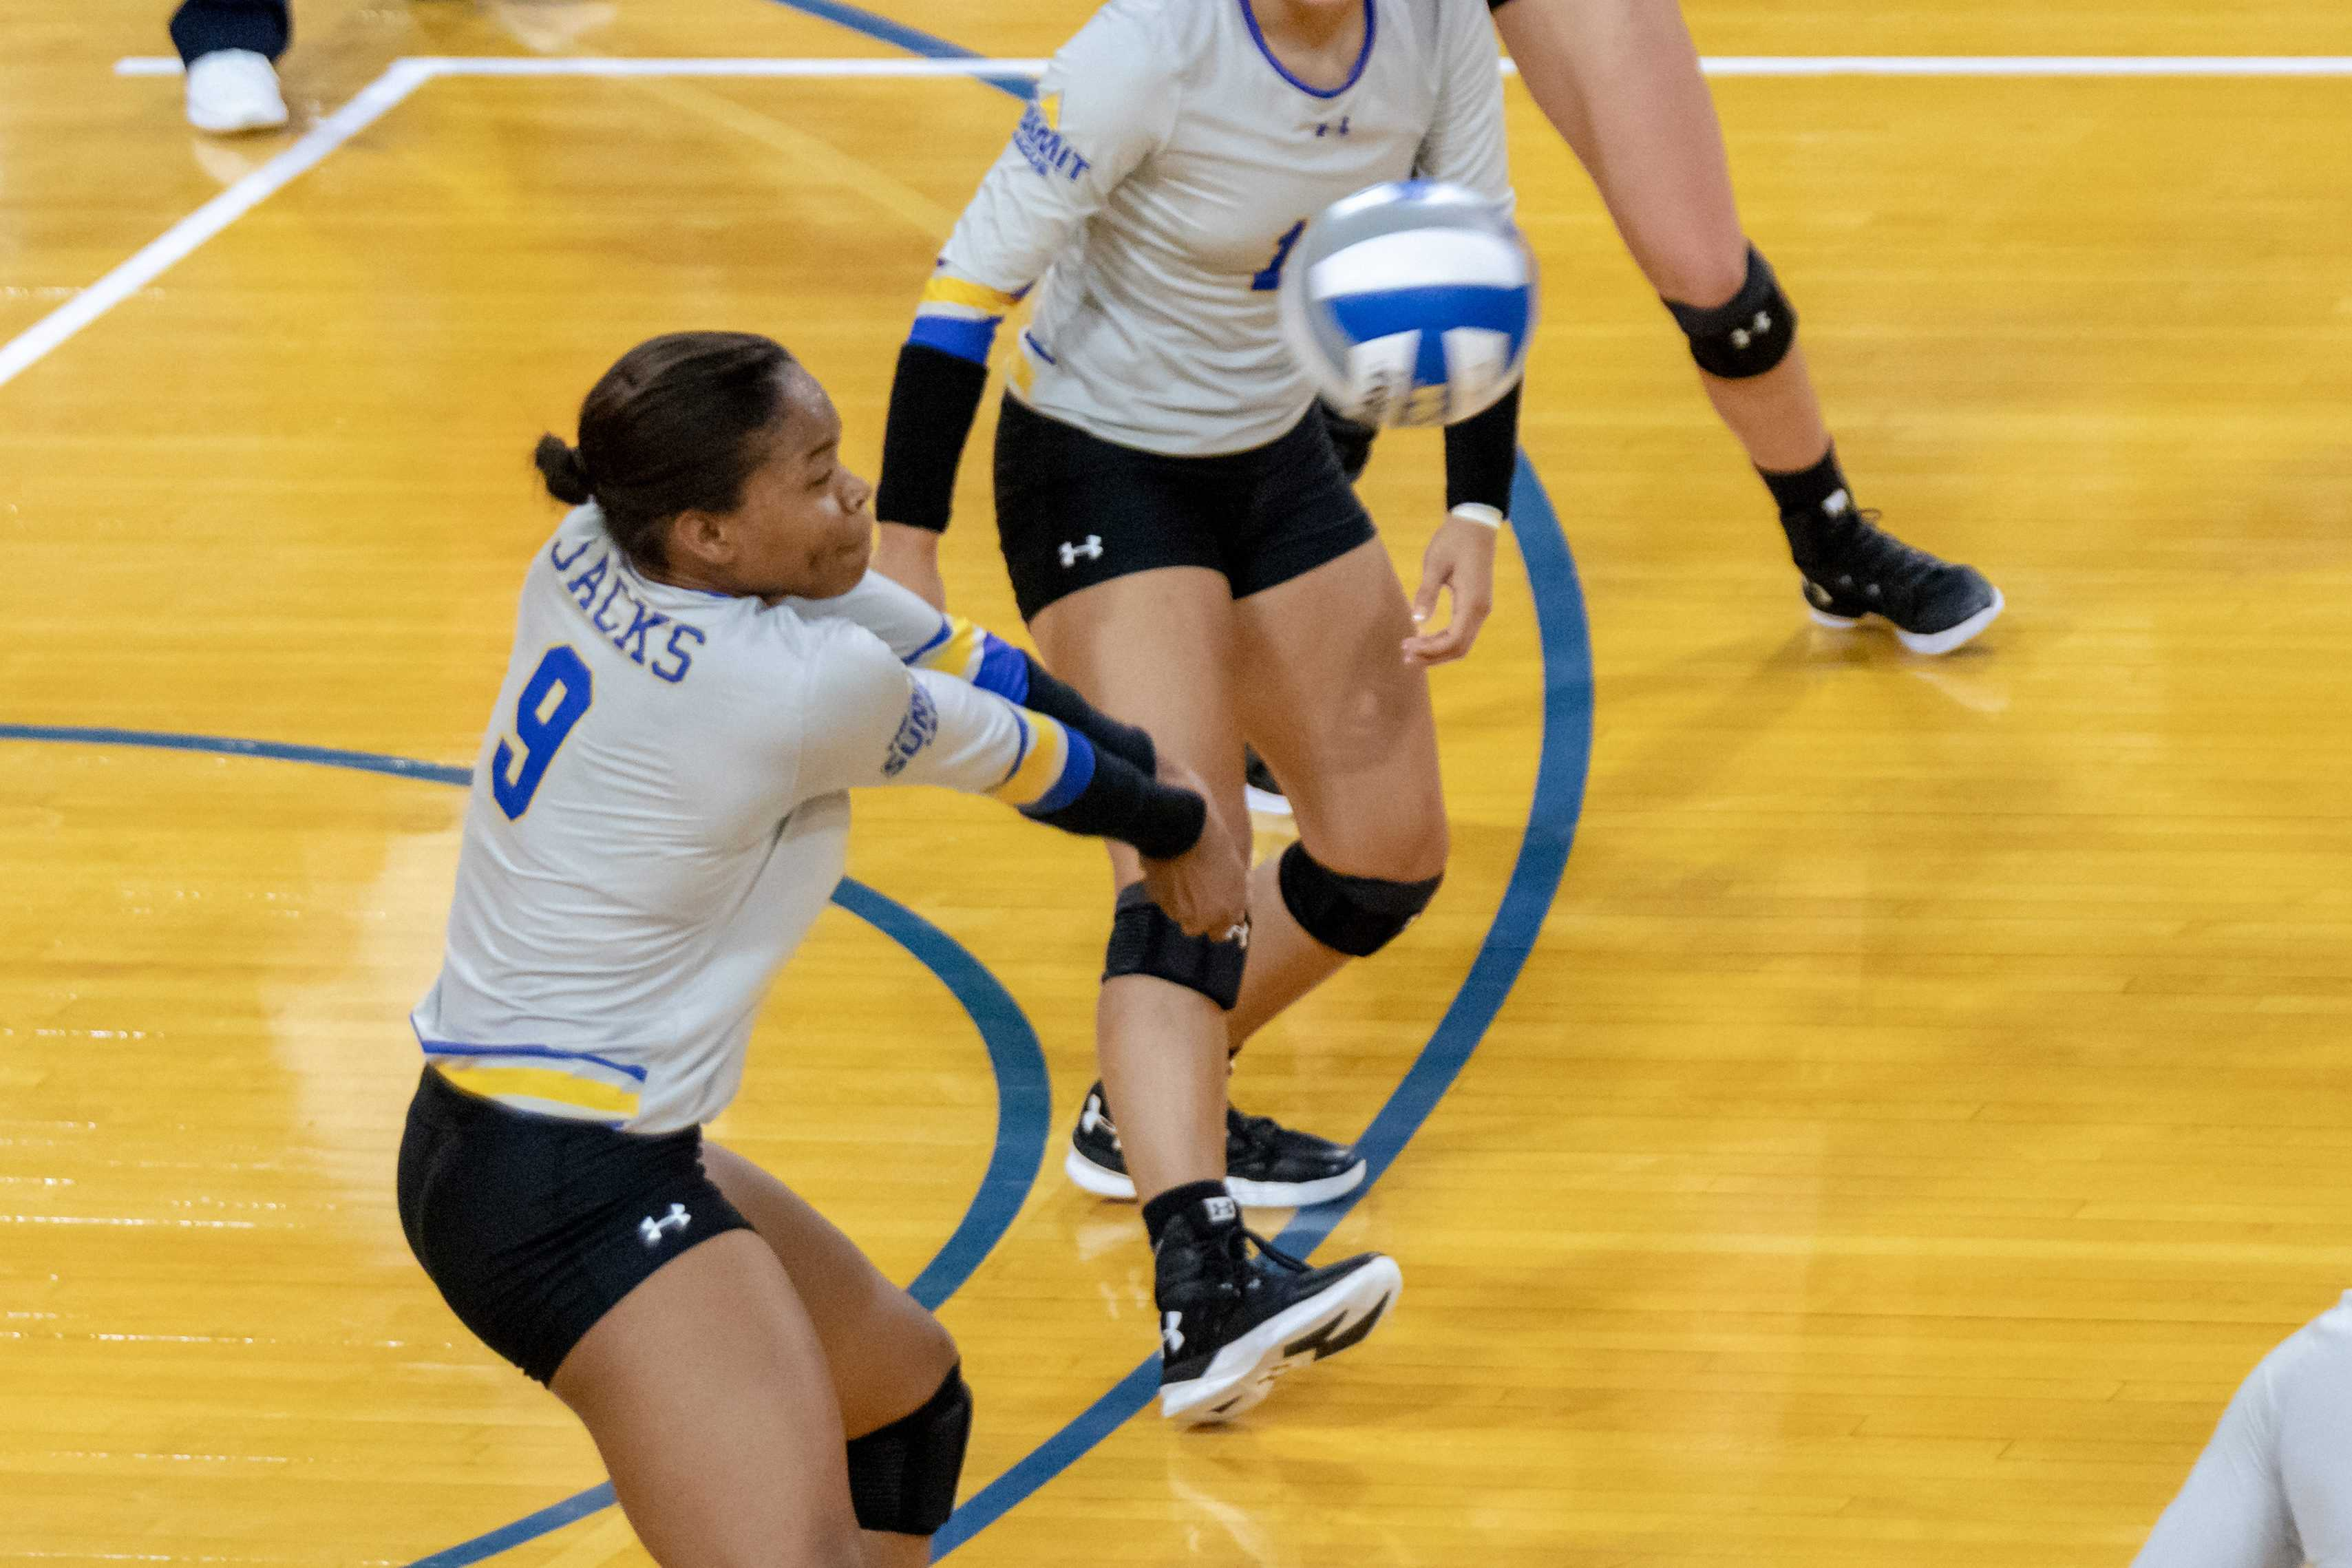 MIRANDA SAMPSON Freshman outside hitter Crystal Burke (9) passes the ball during the Comfort Suites University Jackrabbit Invitational against Green Bay on Saturday, Sept. 1 at Frost Arena.